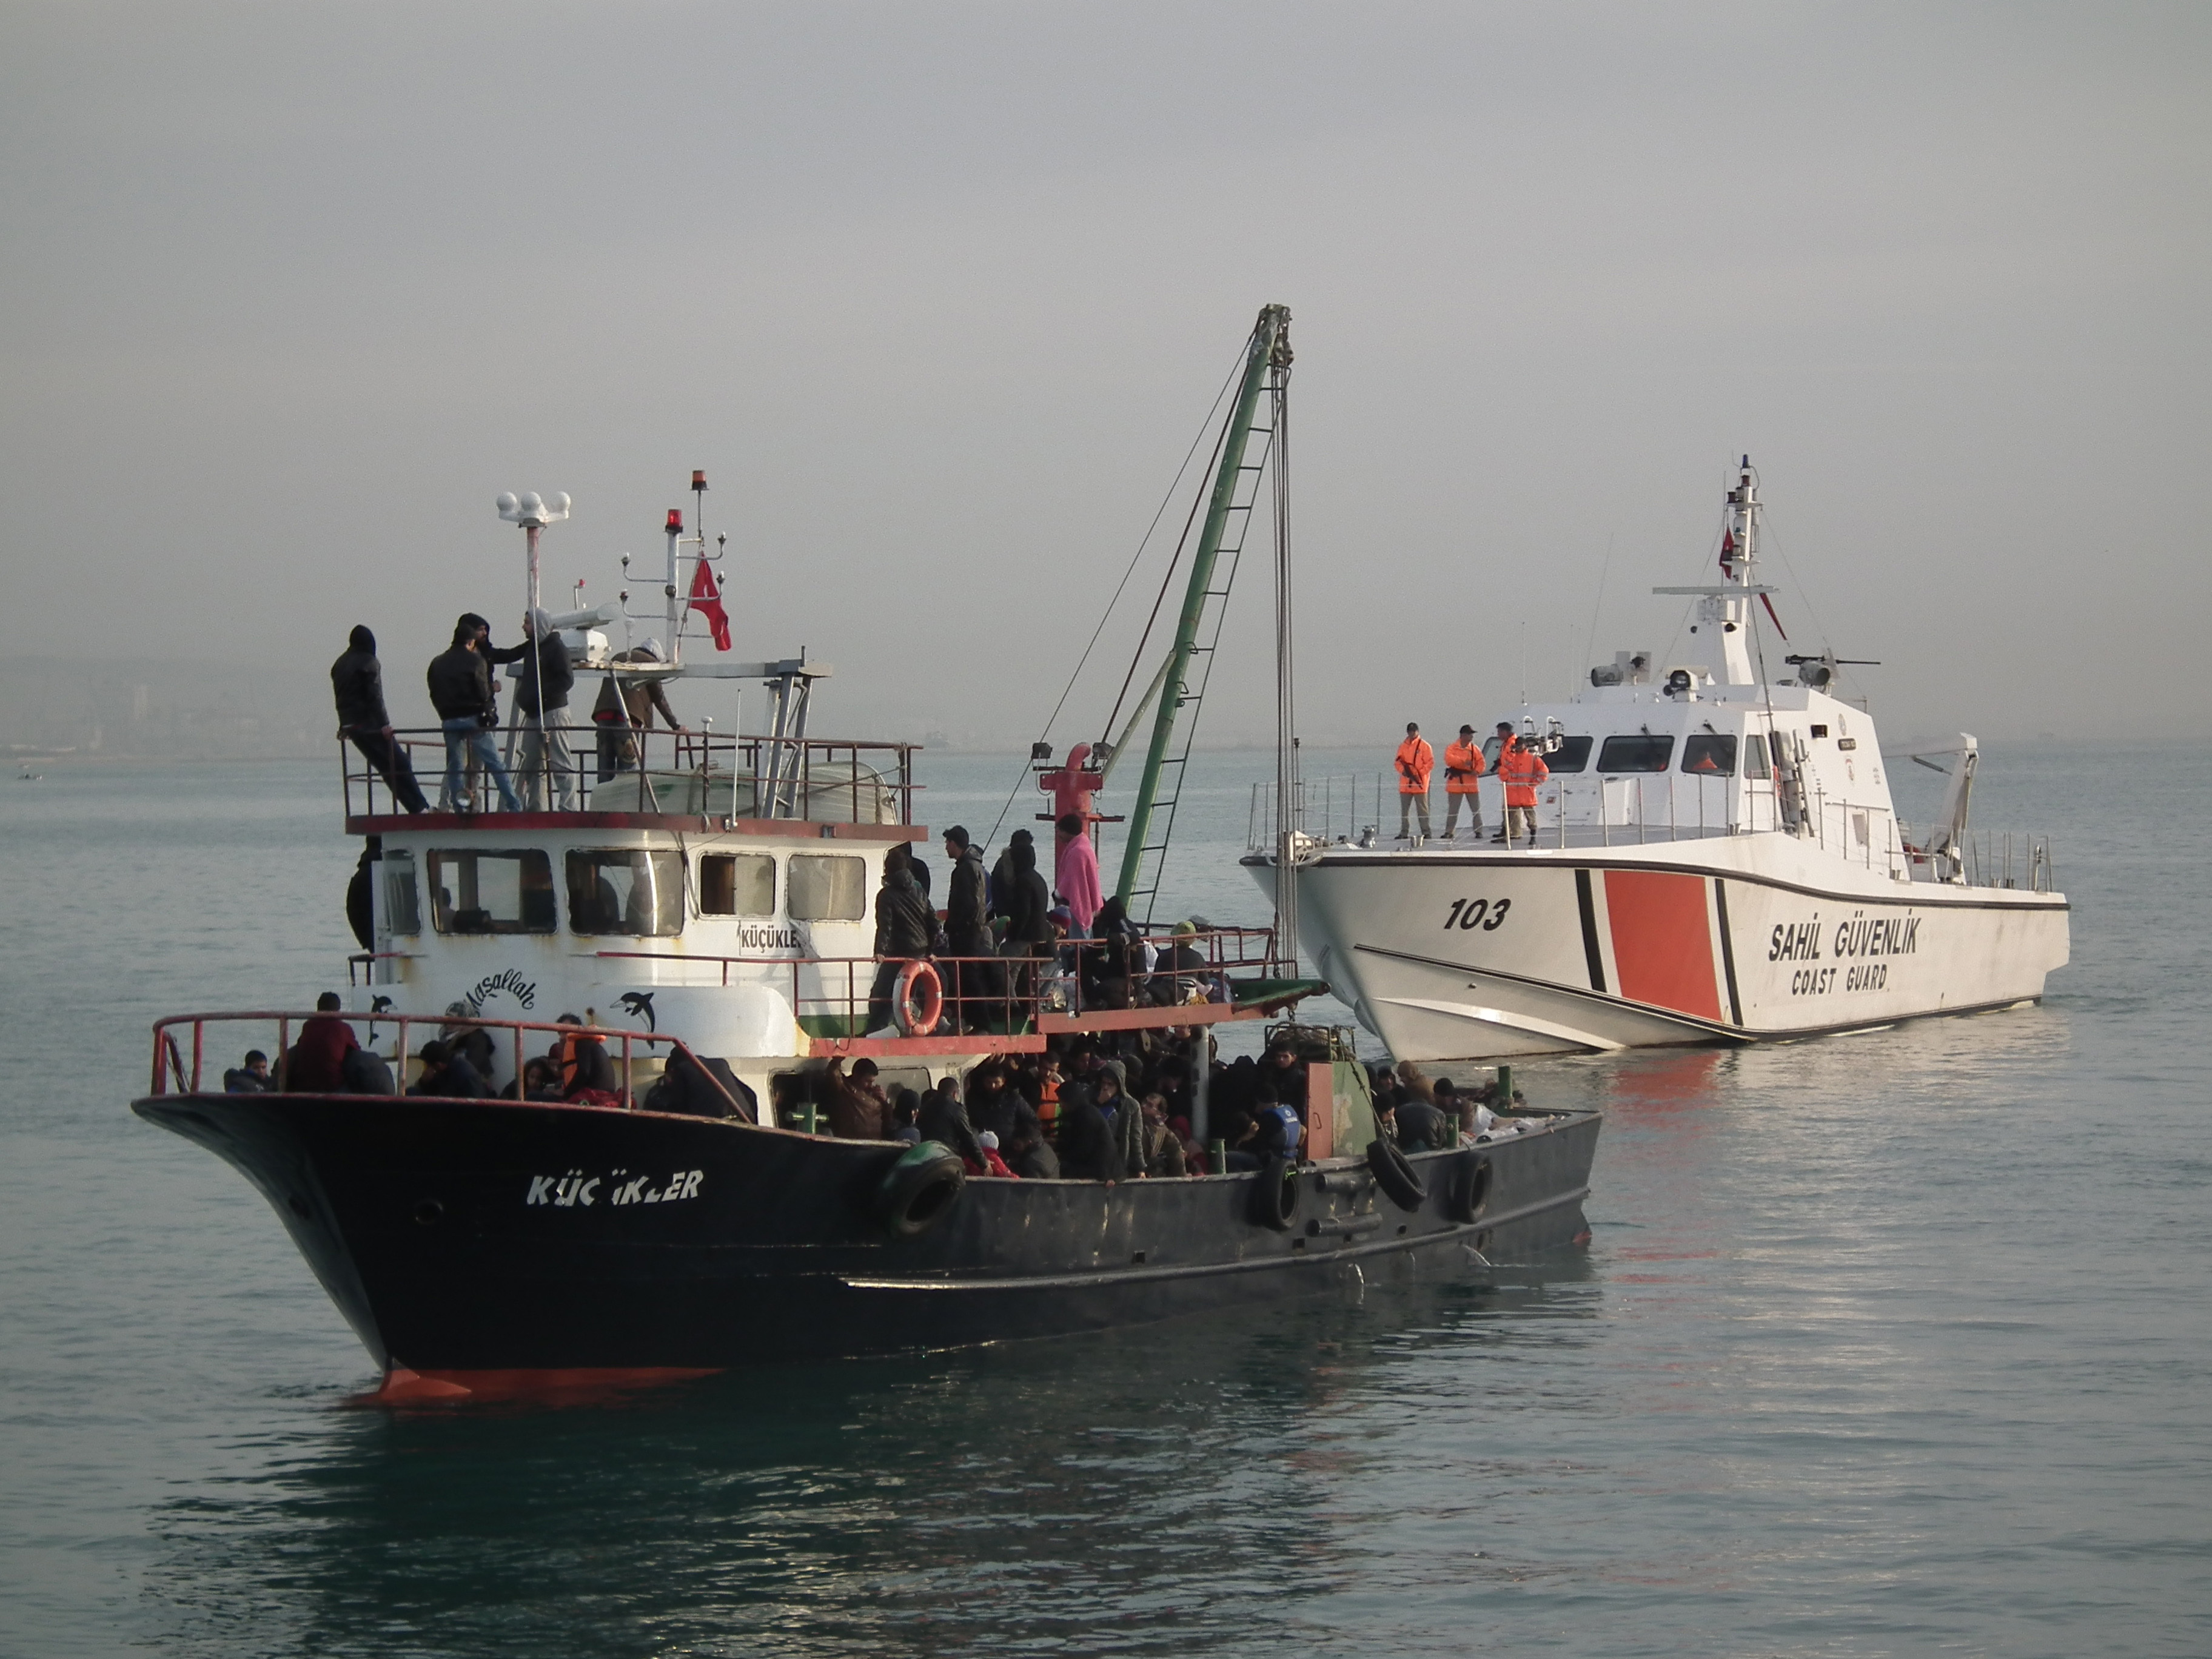 Illegal immigrants are escorted by the officers of Turkey's Coast Guard Mediterranean Region Command as they arrive in Mersin, Turkey on Dec. 6, 2014.